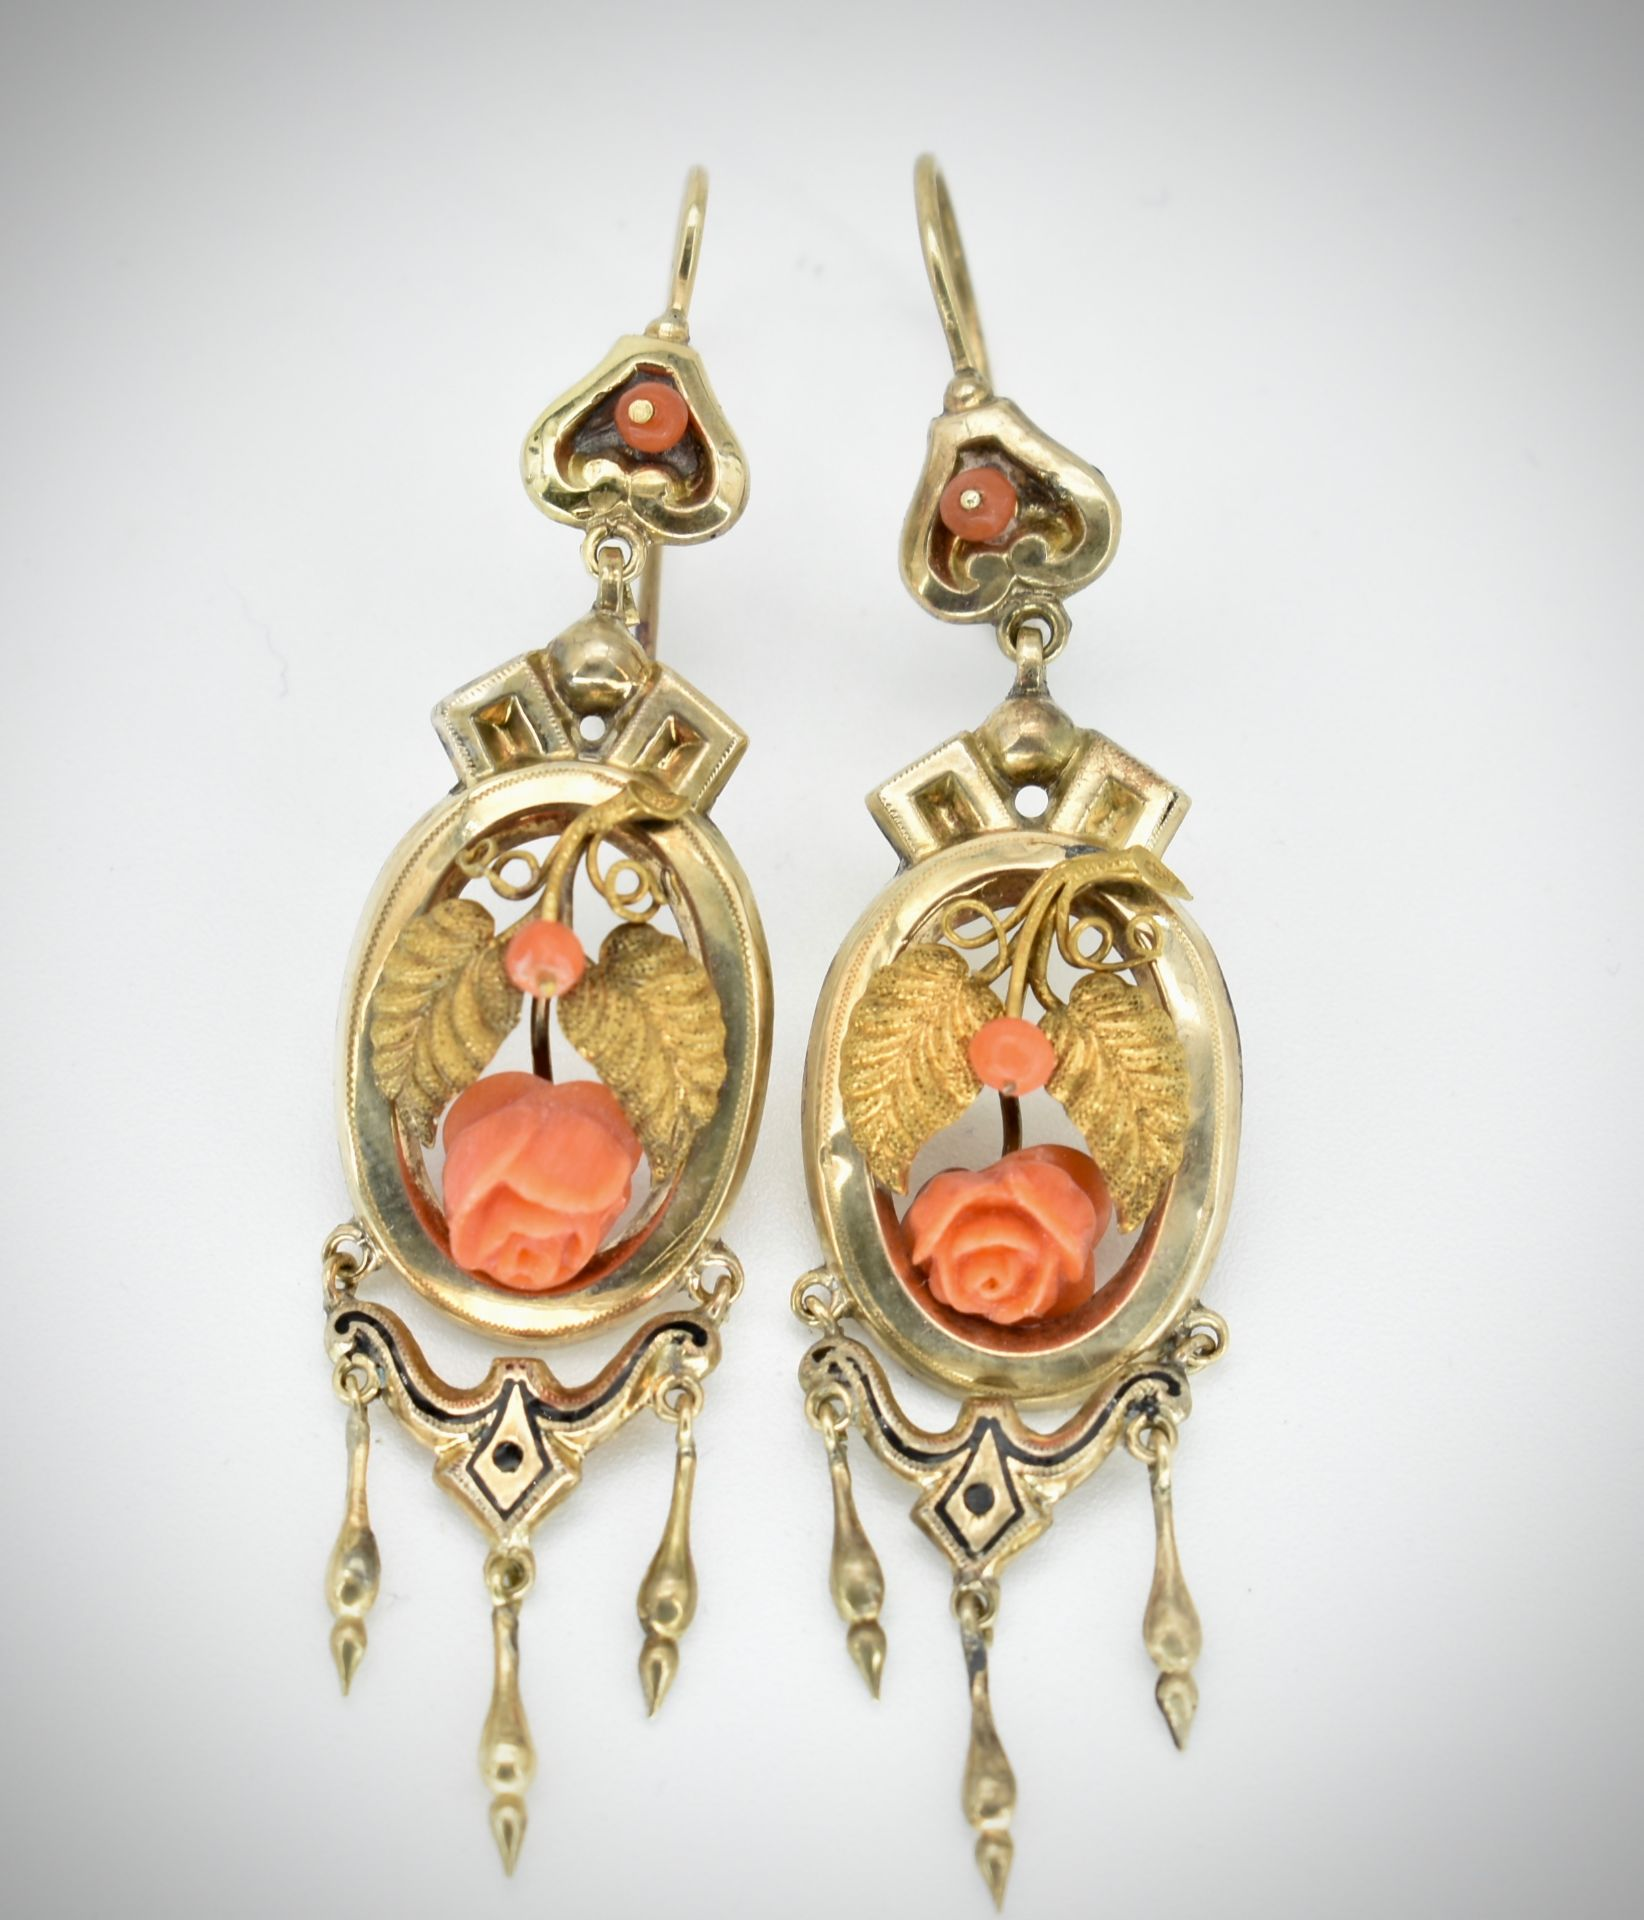 19th Century Victorian Gold & Coral Earring & Brooch Parure - Image 3 of 7